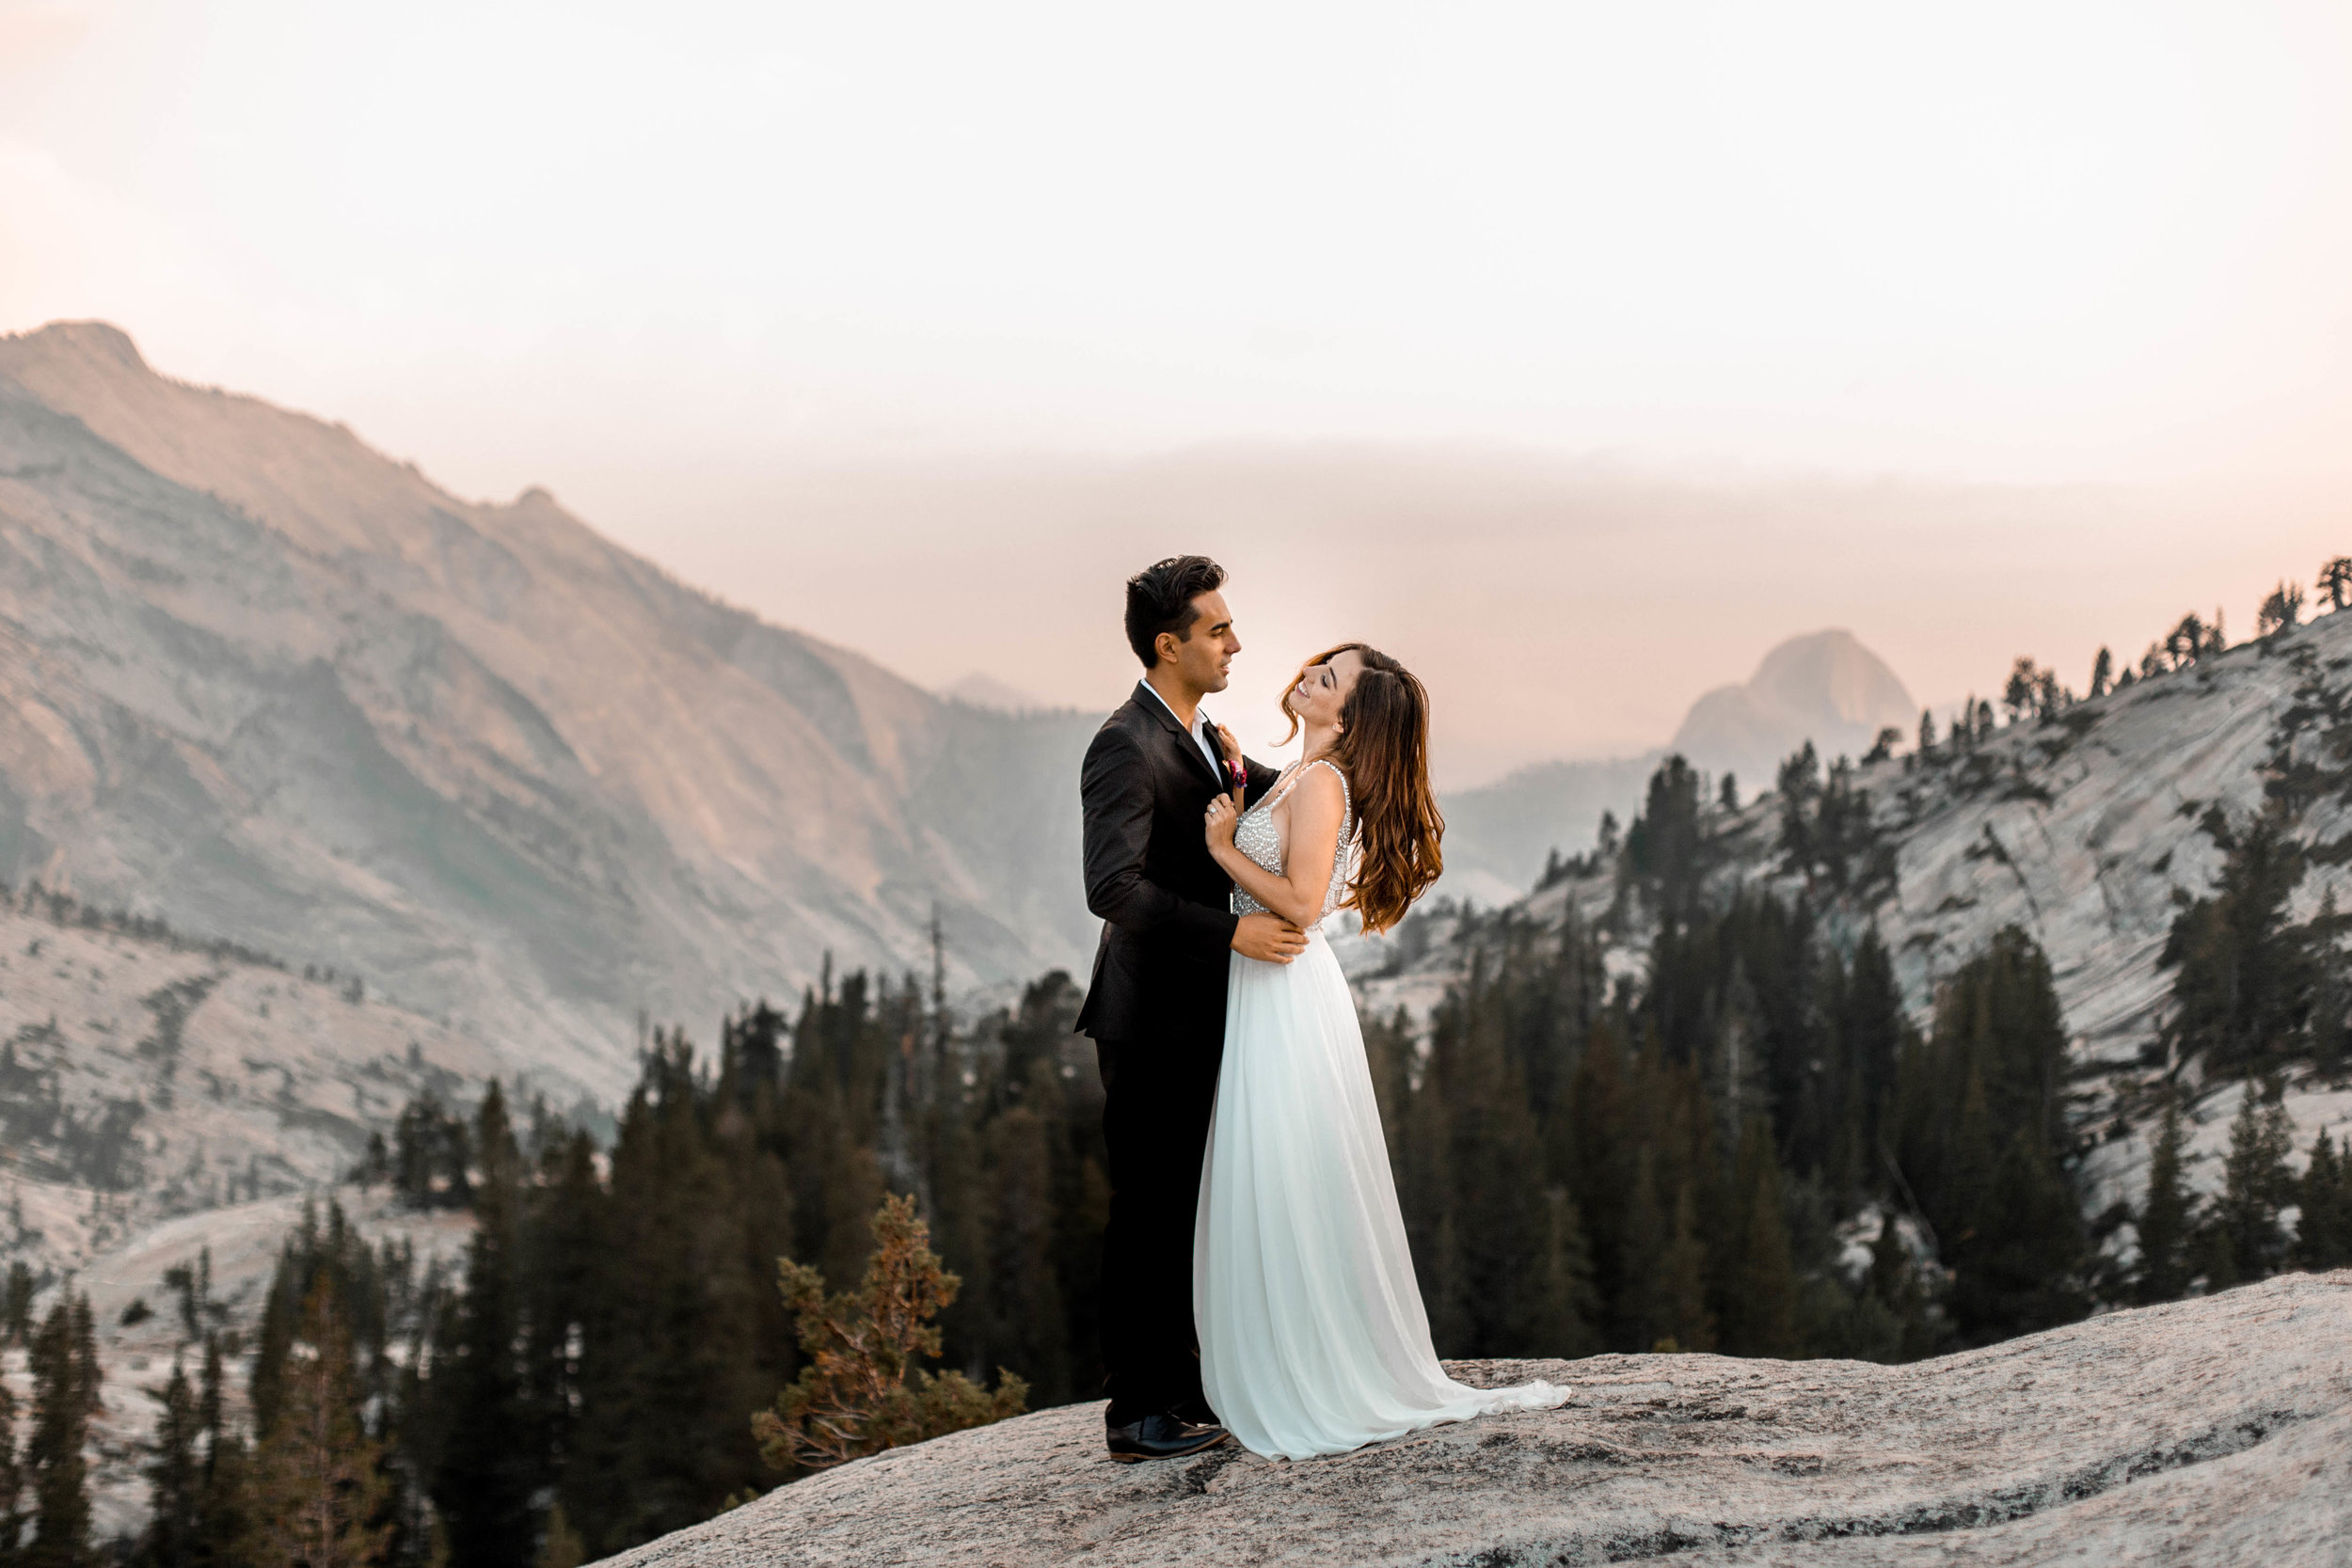 nicole-daacke-photography-yosemite-national-park-wedding-sunset-elopement-olmstead-point-yosemite-adventure-wedding-photographer-adventurous-elopement-destination-wedding-national-park-wedding-photography-1720.jpg